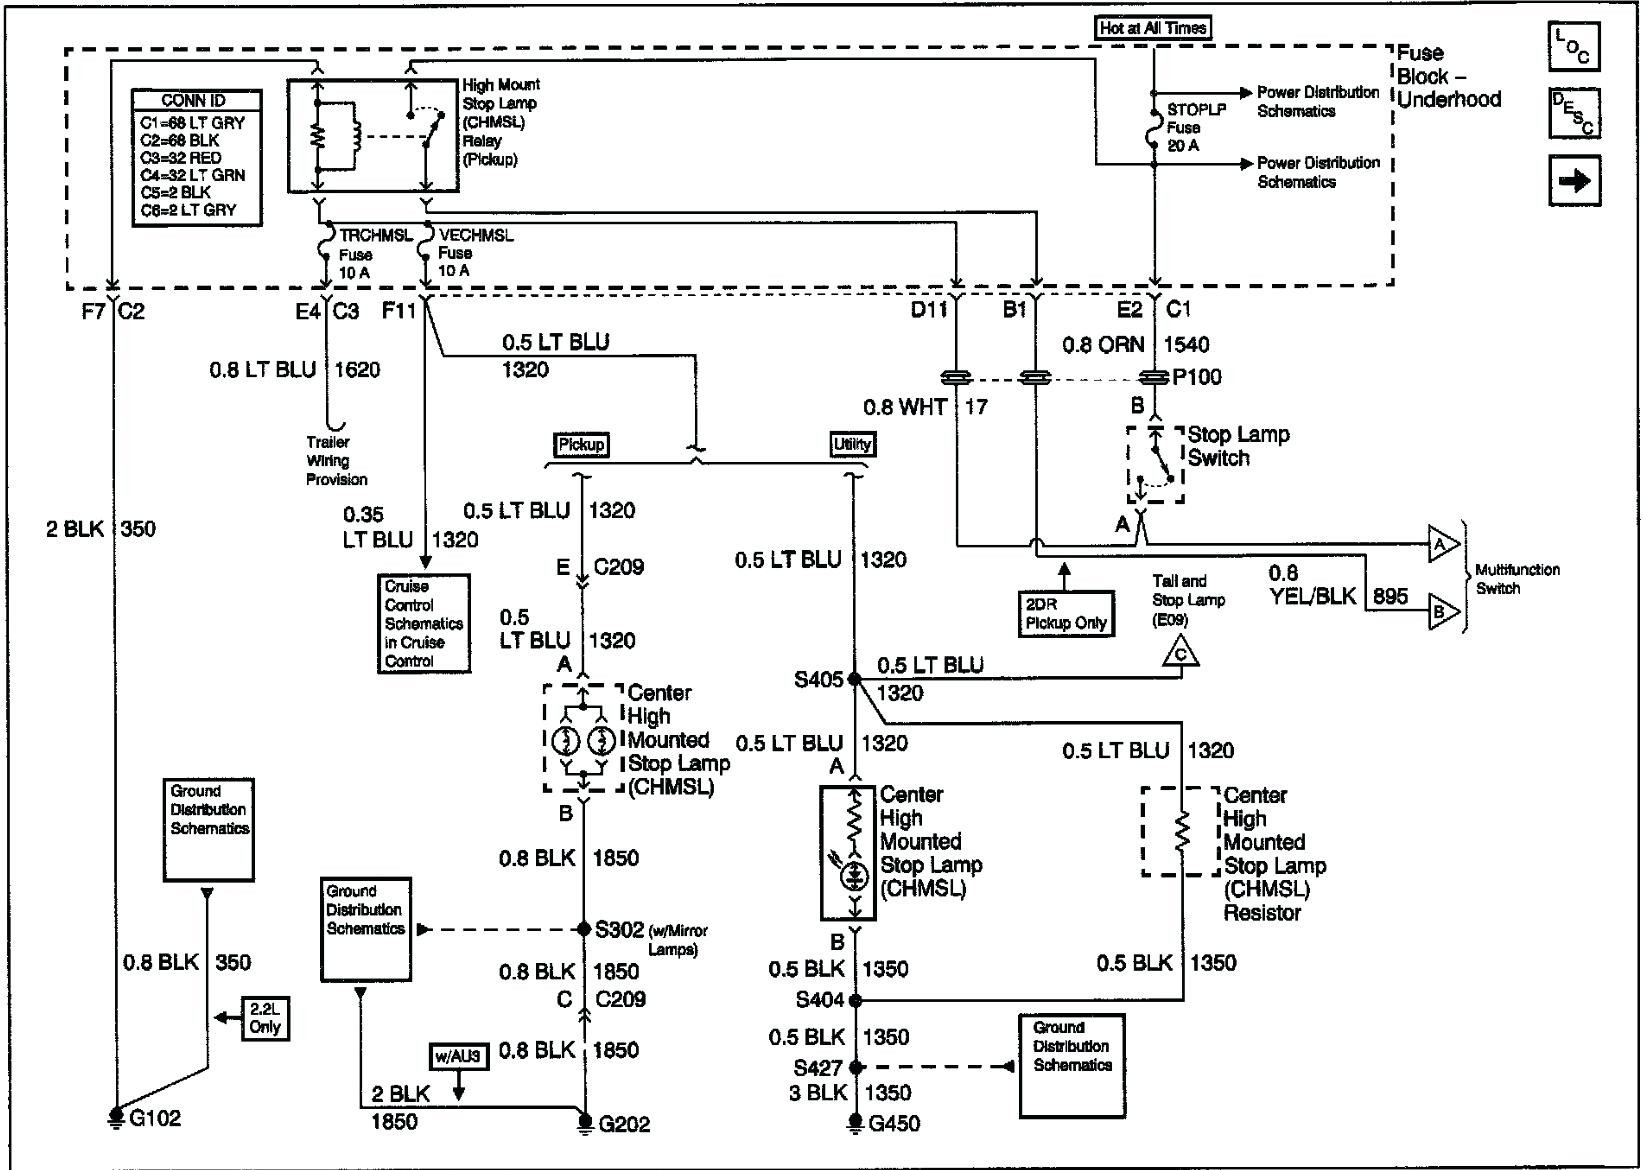 Jeep wrangler wiring diagram free awesome wiring diagram image jeep wrangler jk wiring diagram free save 2010 jeep wrangler wiring diagram copy 2010 jeep wrangler asfbconference2016 Gallery